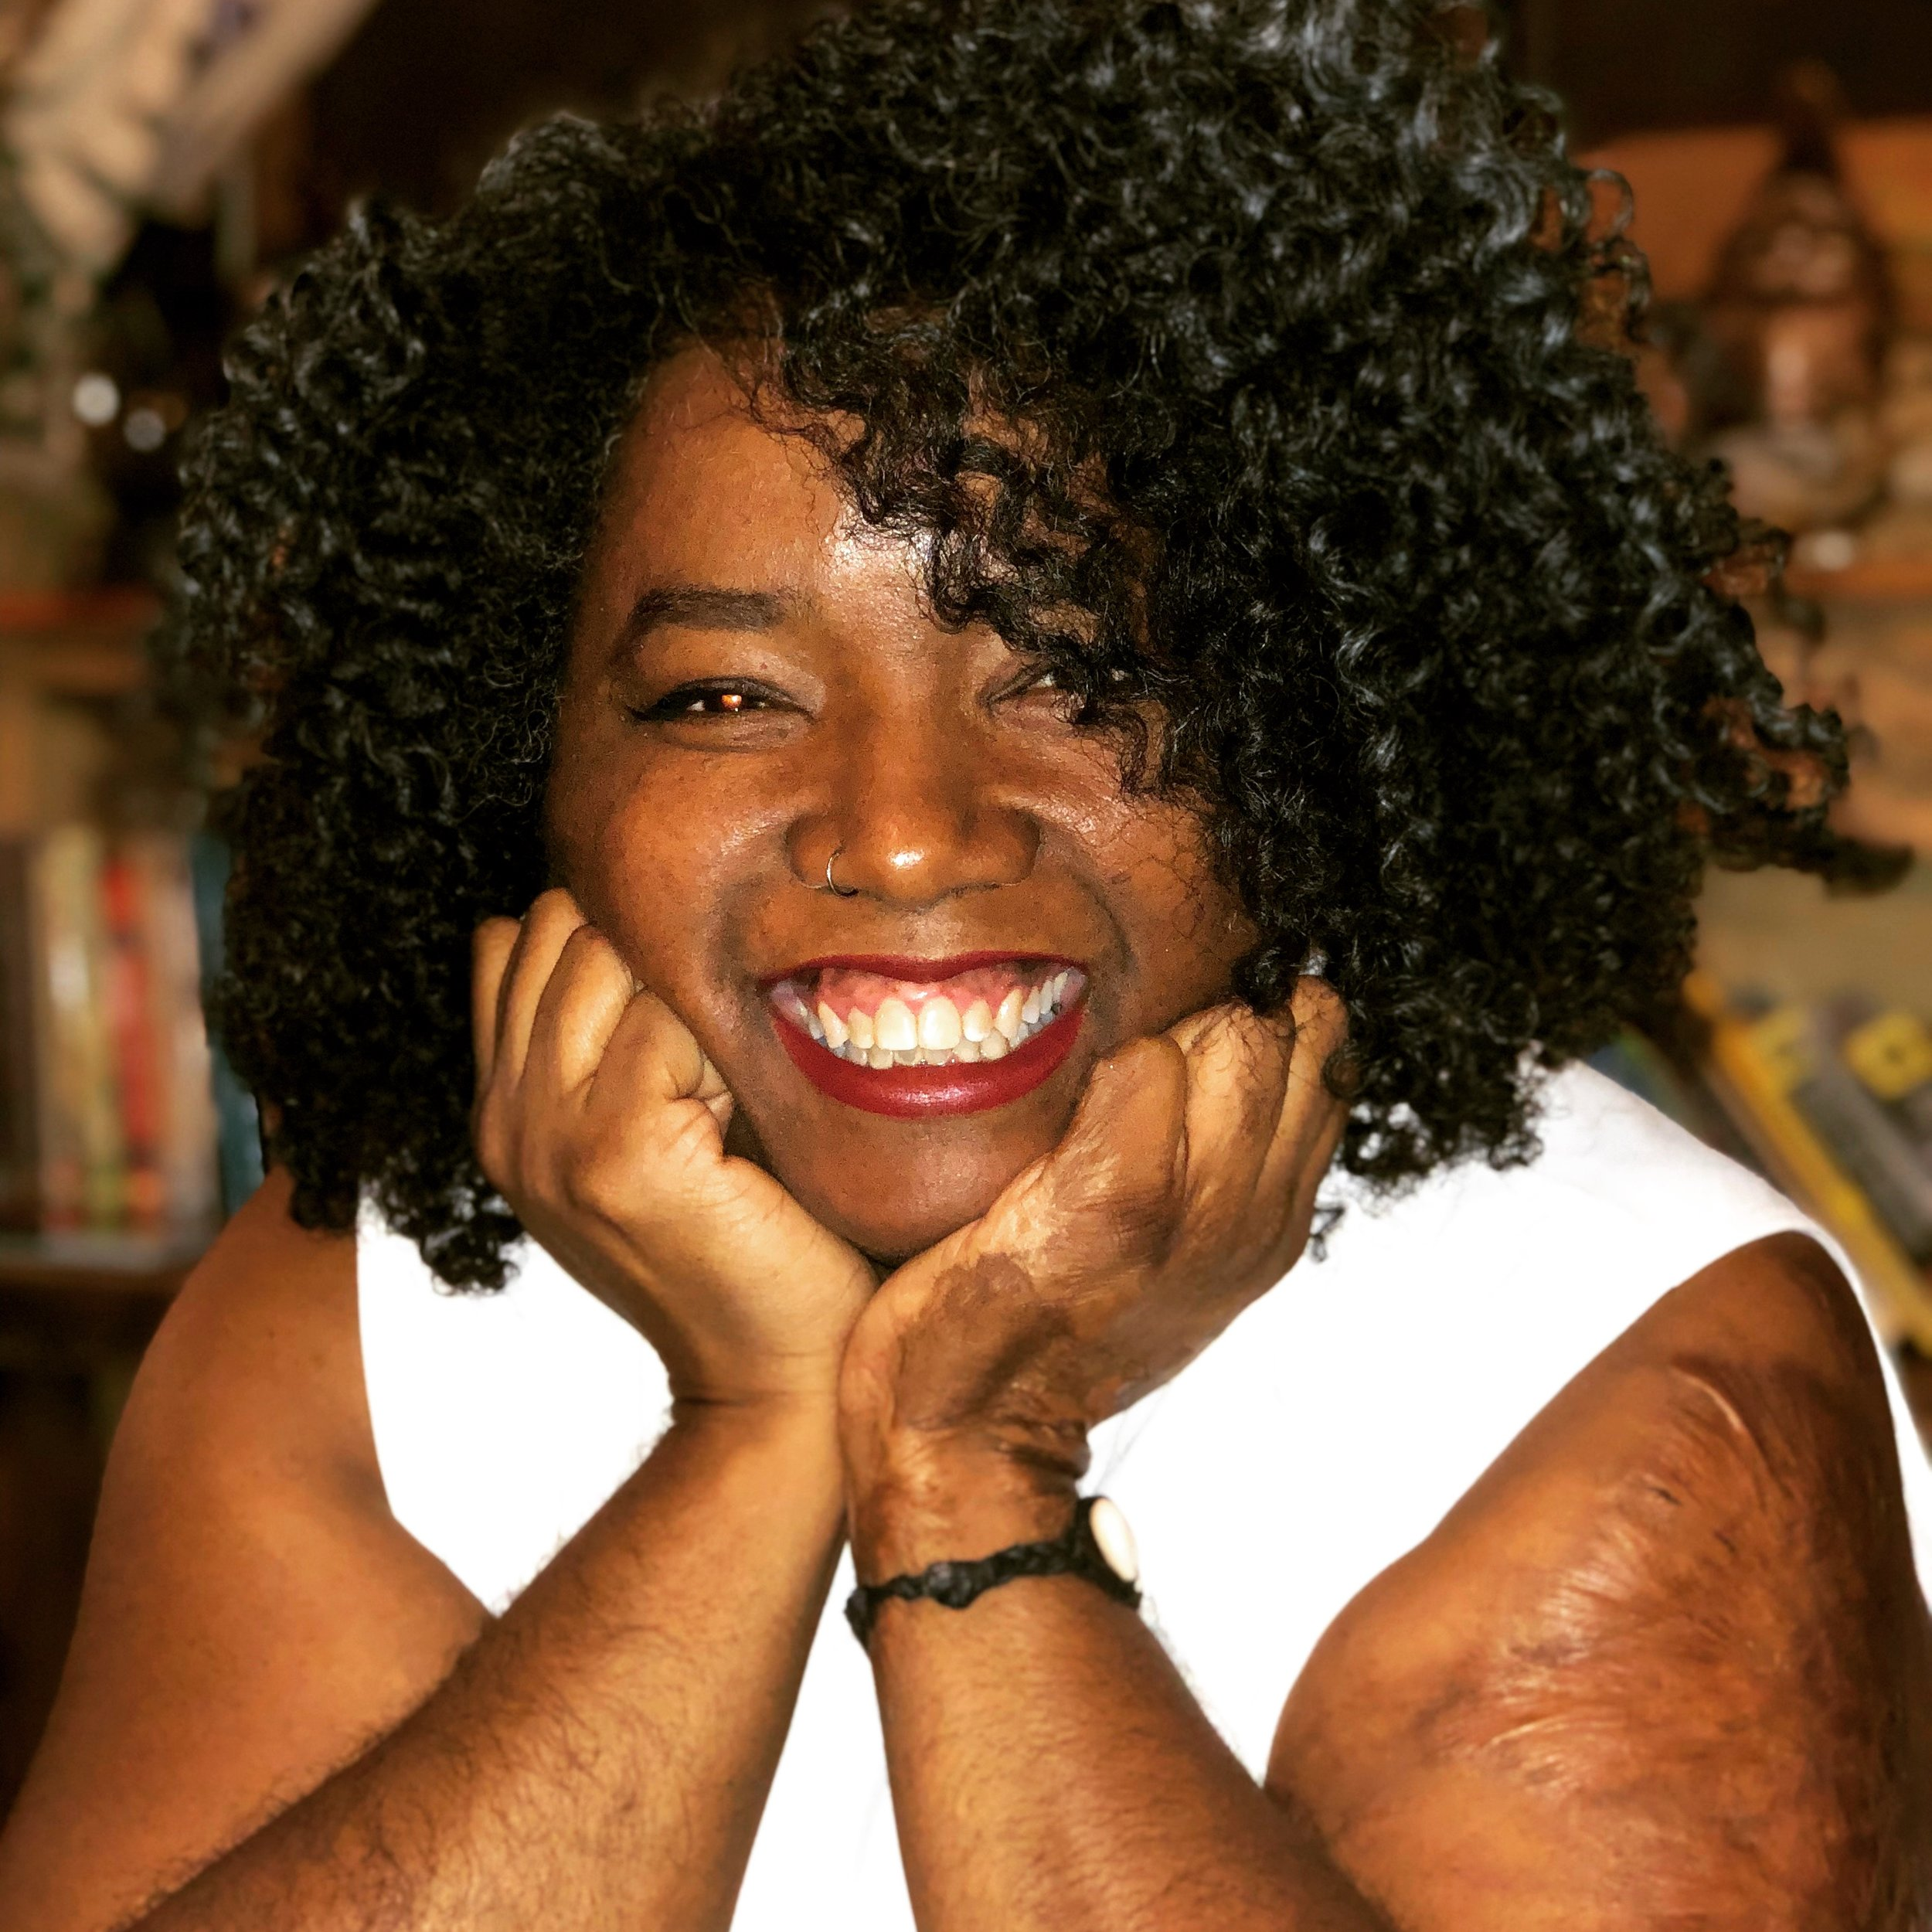 Red Thread Circle - Ursula Ferreira from Apothecary For The Soul & I have a wide-ranging conversation about enstasy, erotic healing, and what white healers & educators need to know to work with People of Color.